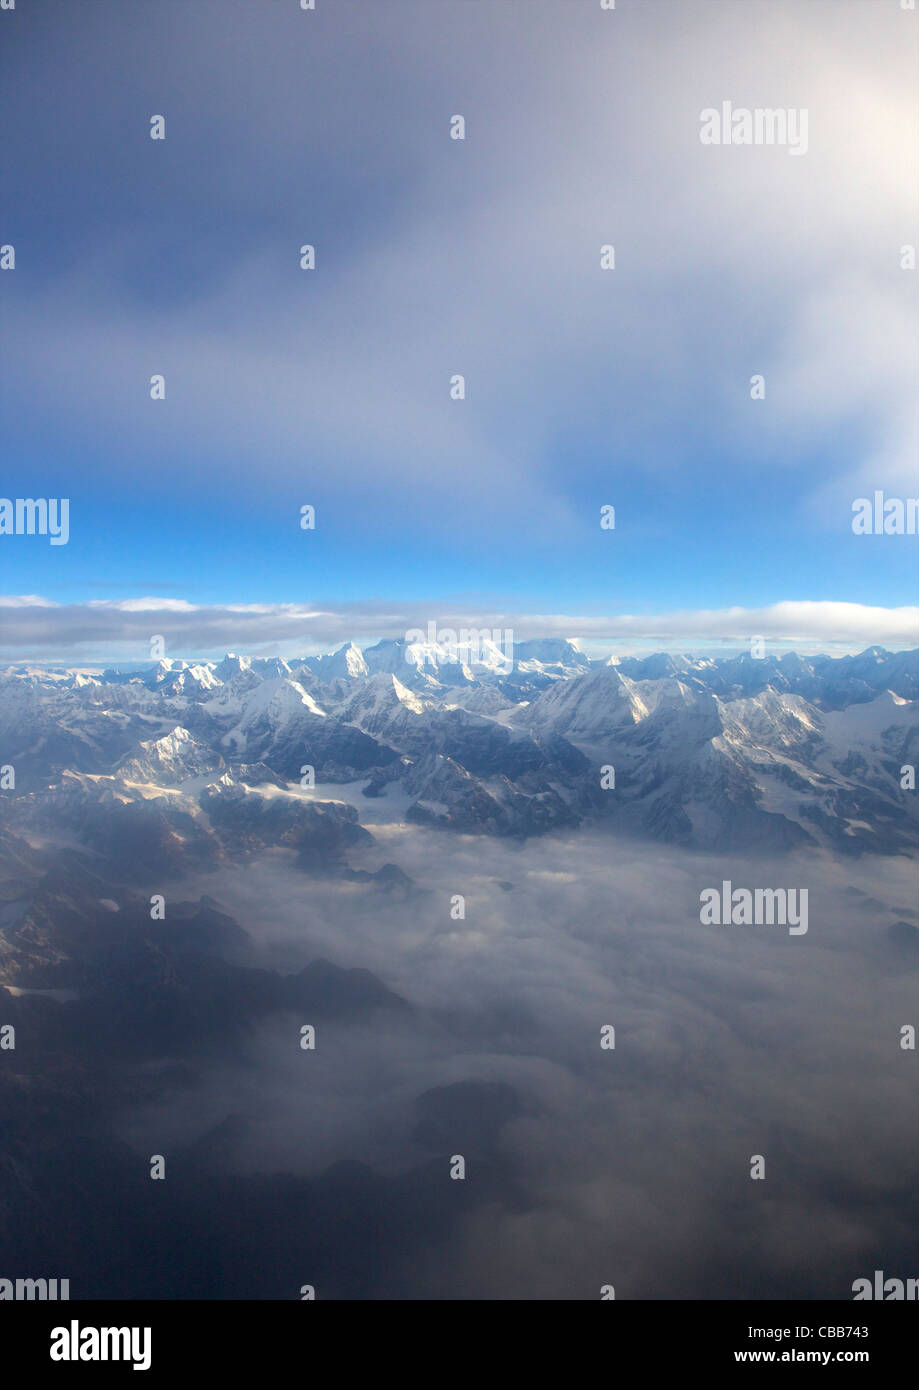 Aerial photograph of Himalayan mountains east of Kathmandu, Nepal, Asia - Stock Image